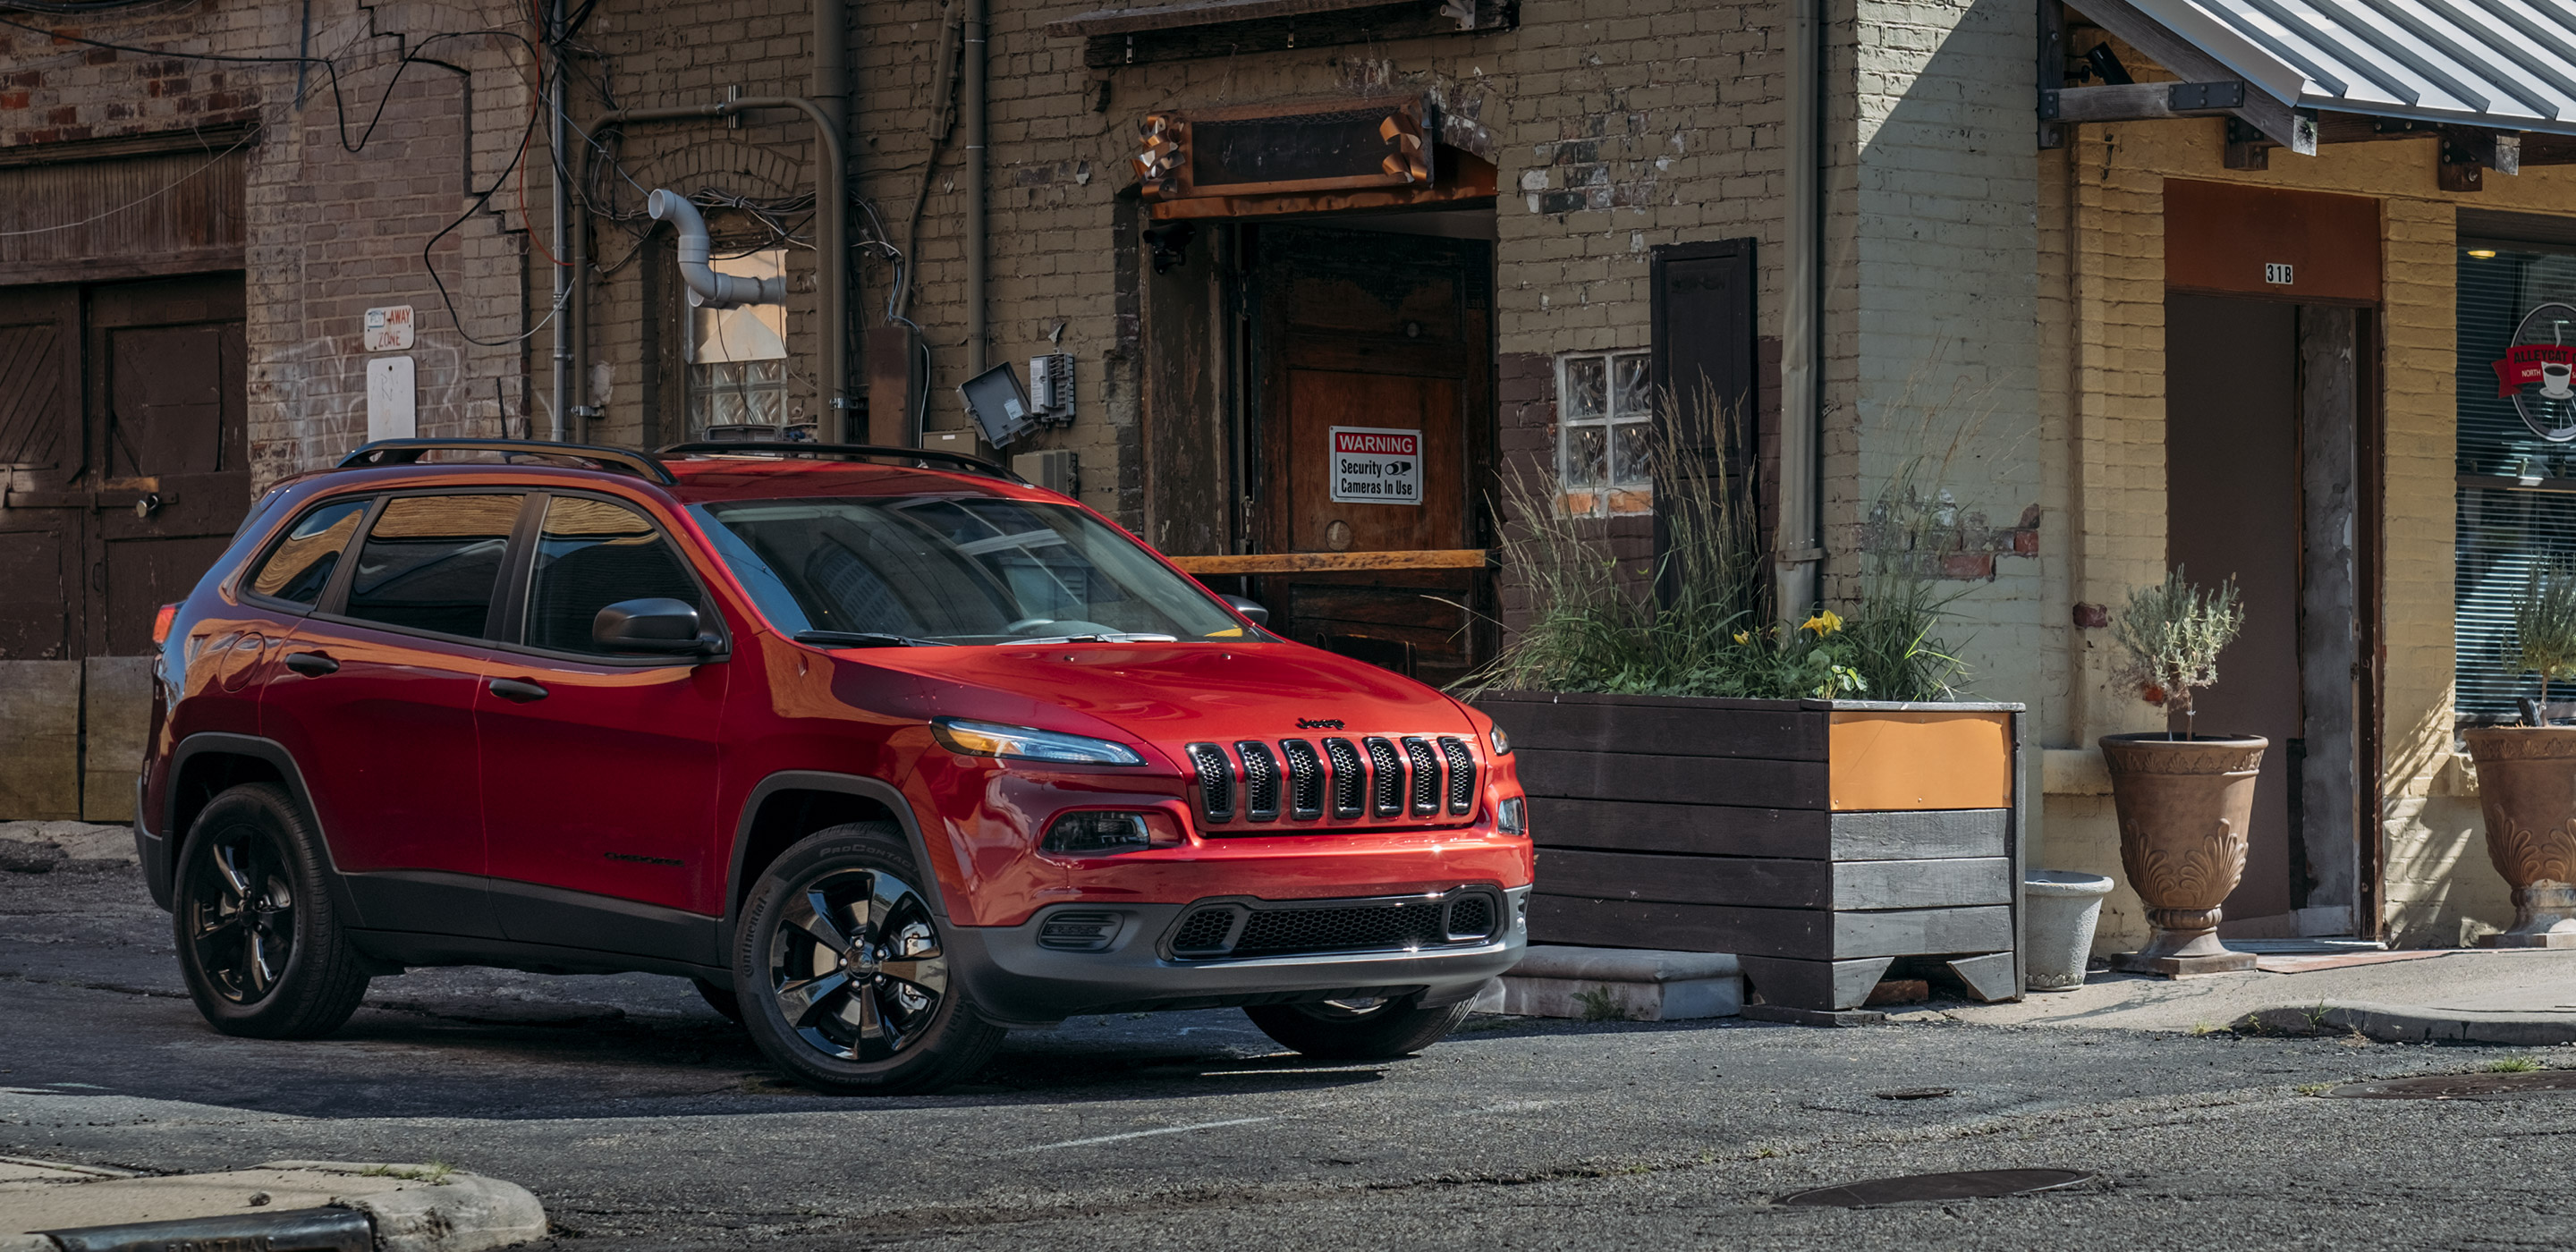 2019 Jeep Cherokee park on road city hd 4k wallpaper   Latest Cars 2880x1400